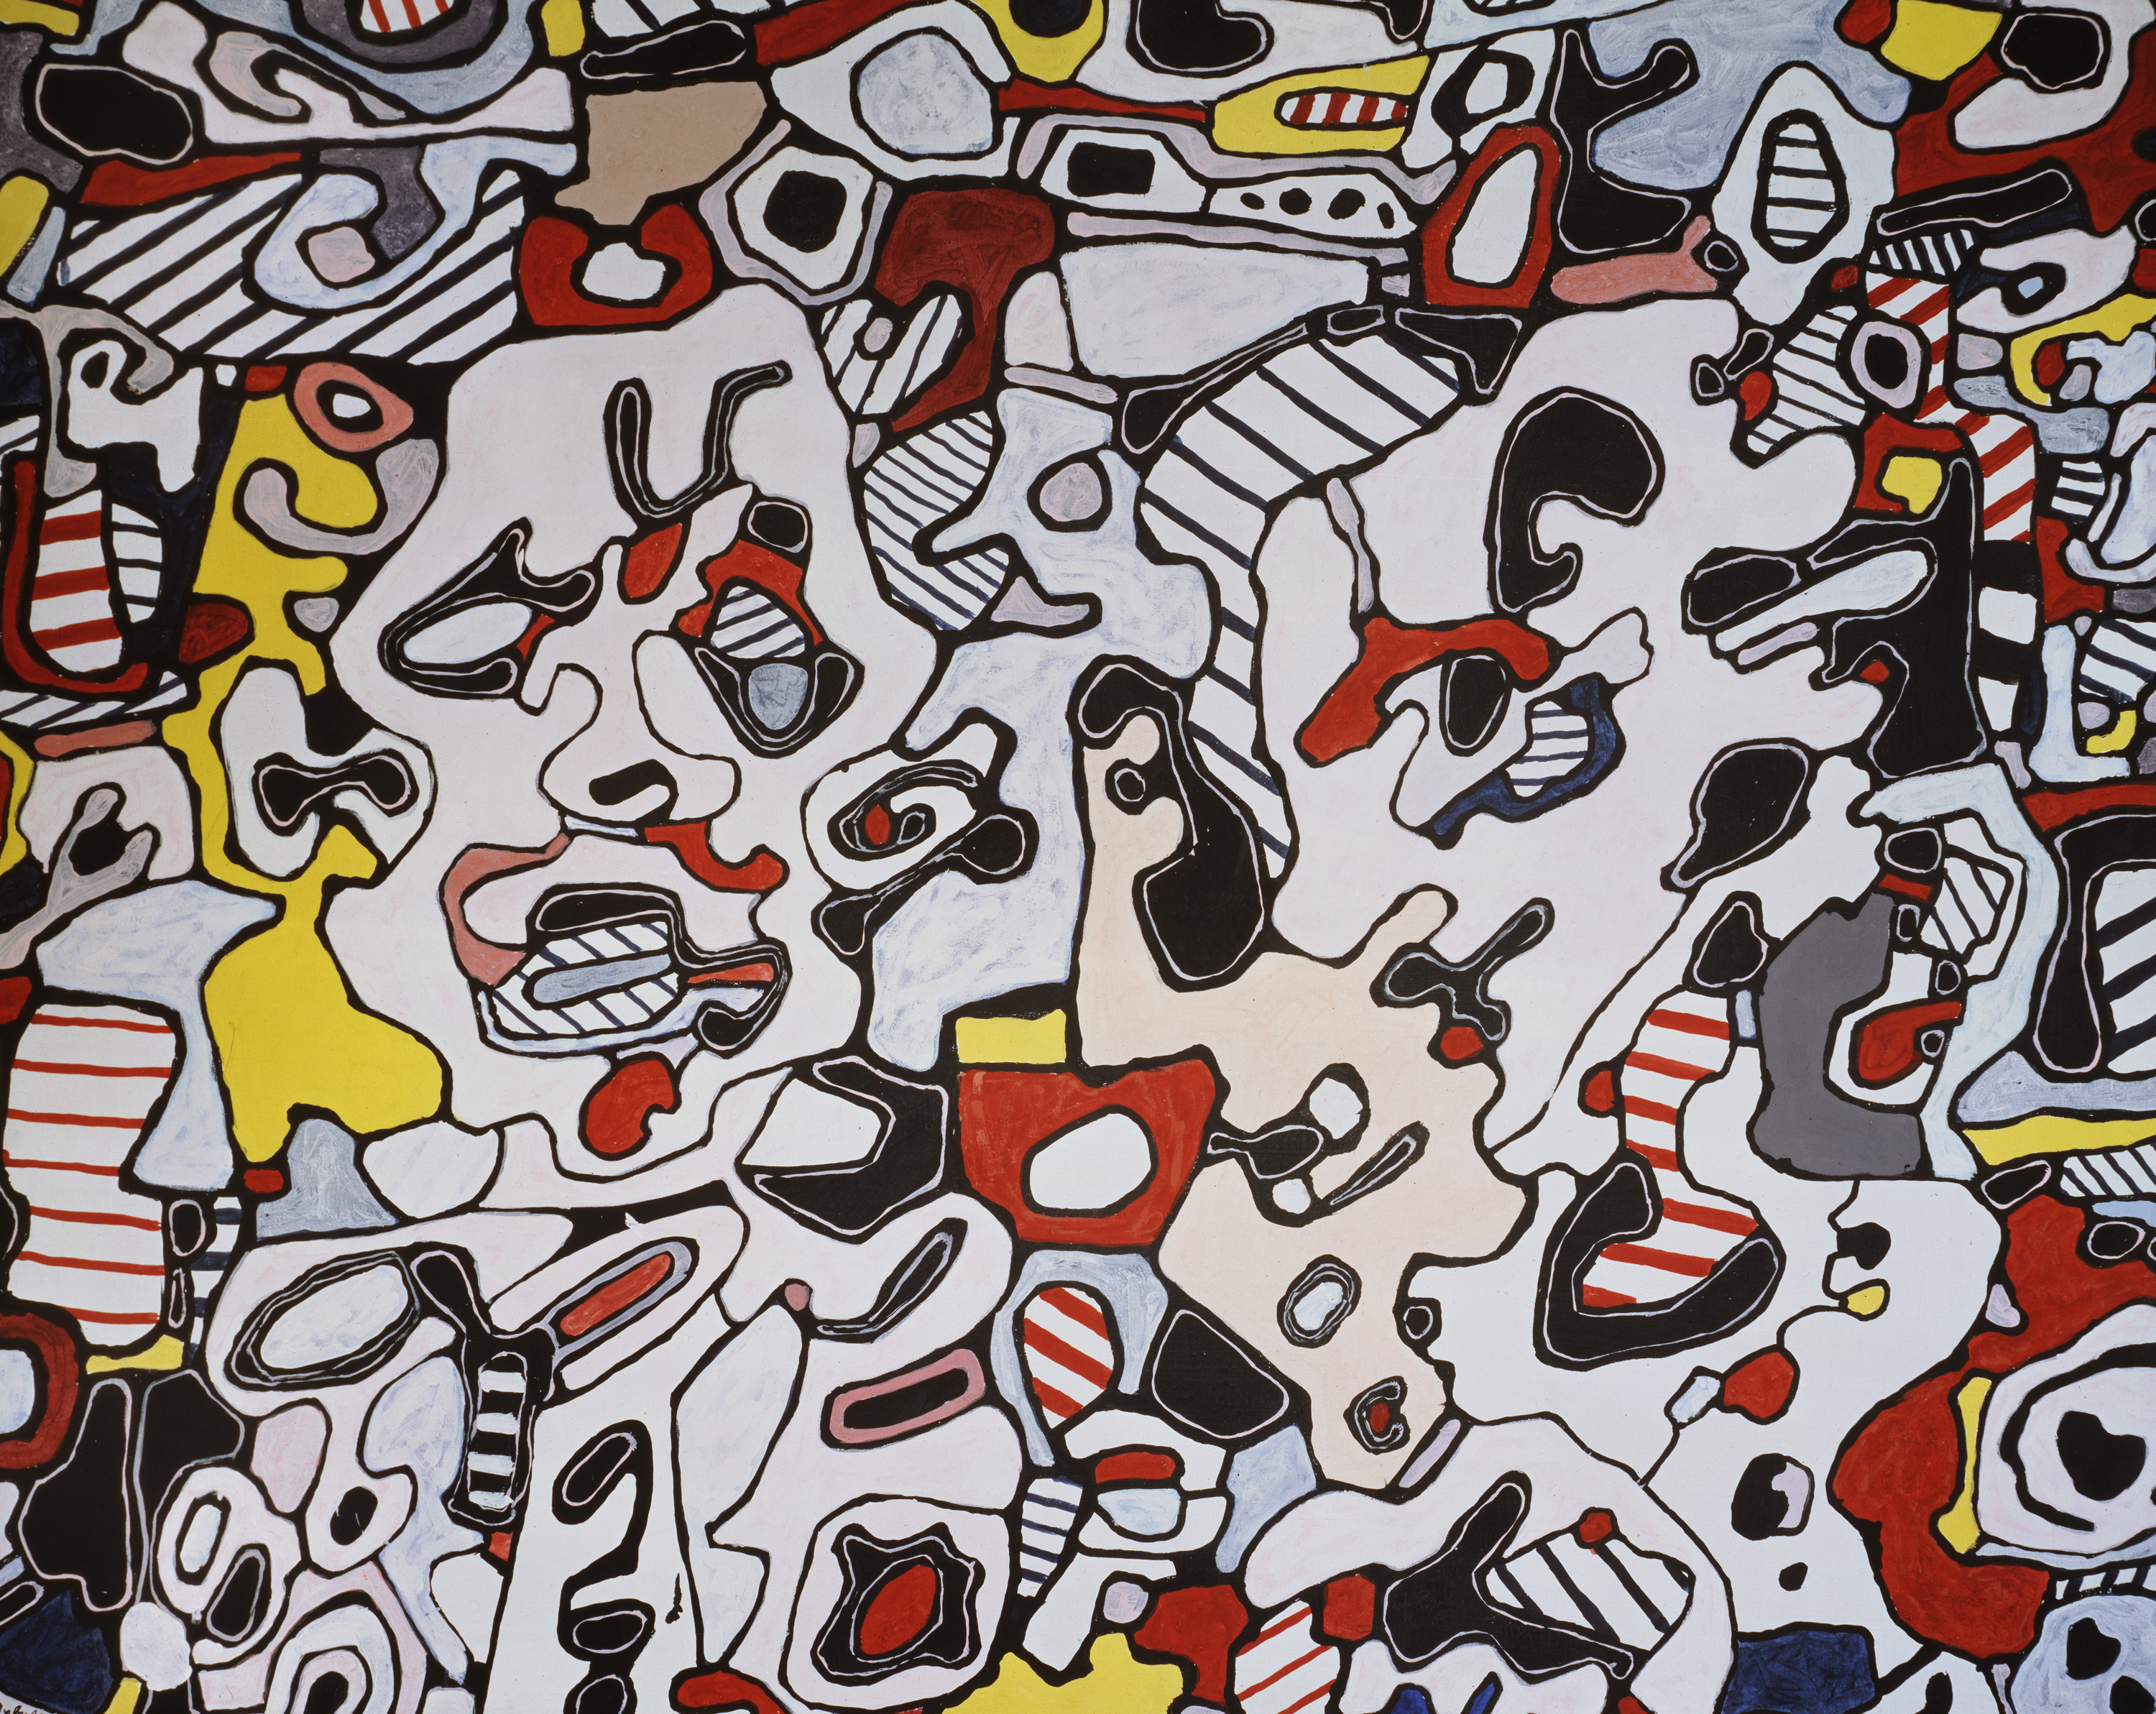 Jean Dubuffet, 'Offres galantes,' 1967, vinyl on canvas